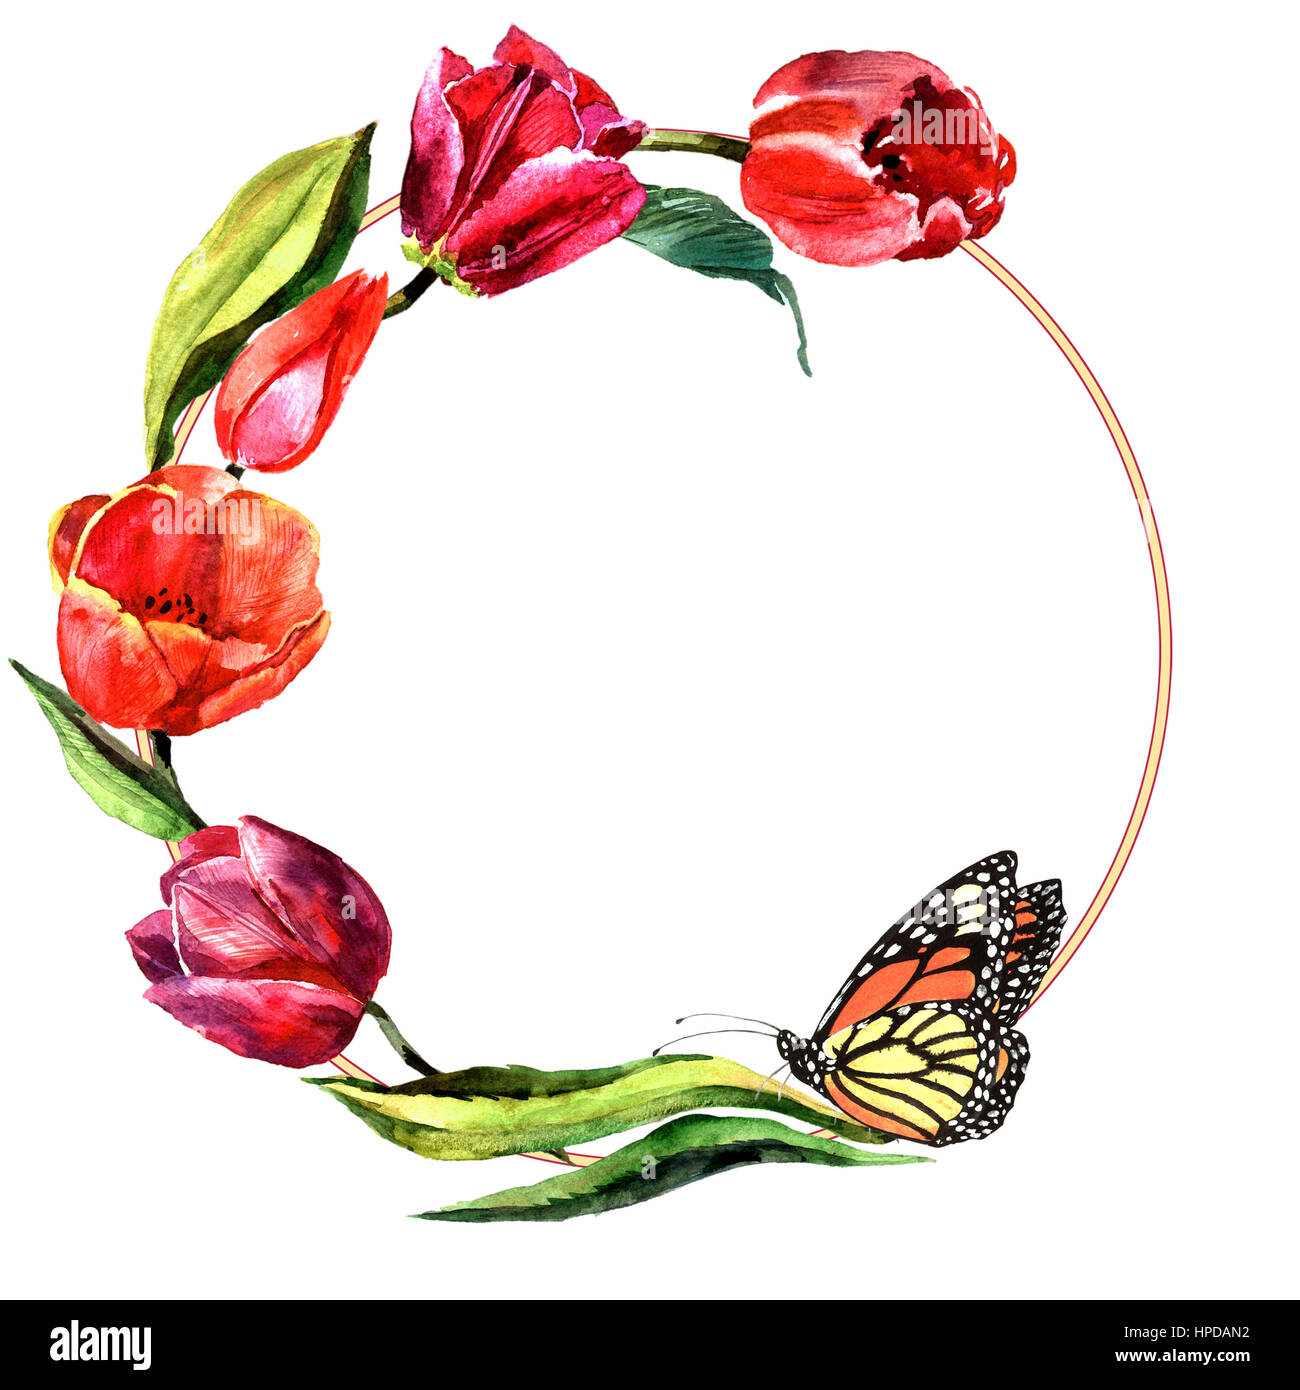 Wildflower Tulip Flower Frame In A Watercolor Style Isolated Full